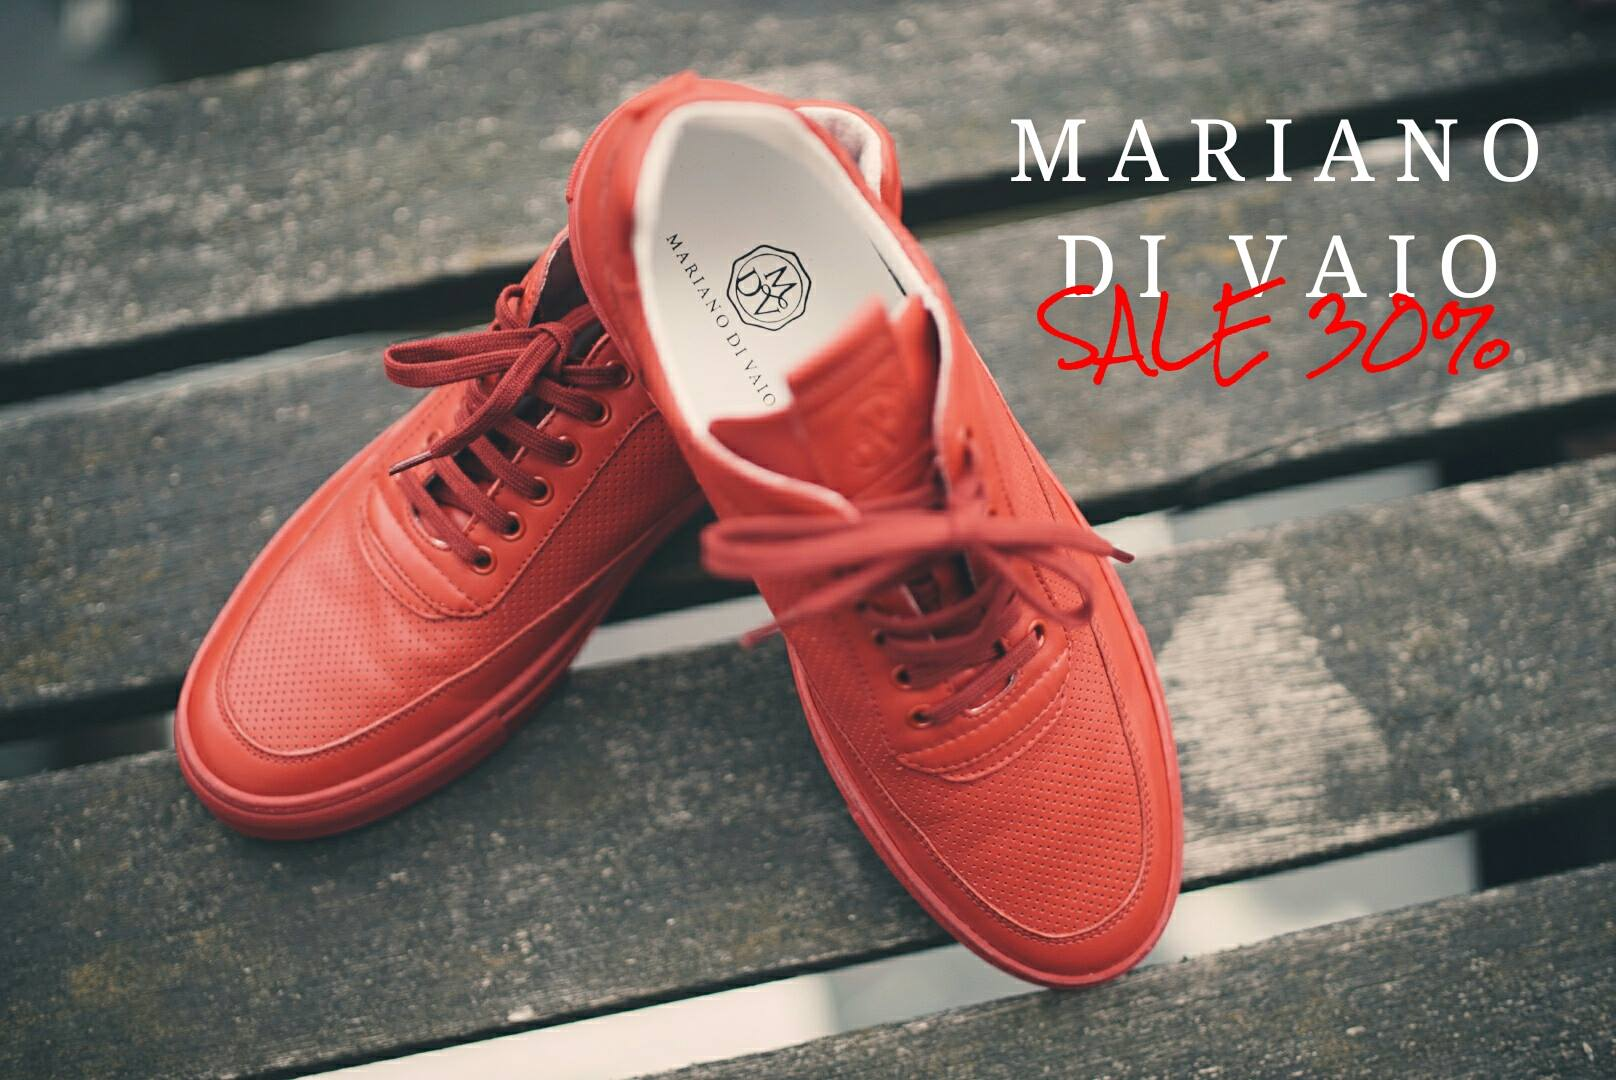 Mariano Di Vaio Shoes koop je bij Taft Shoes!